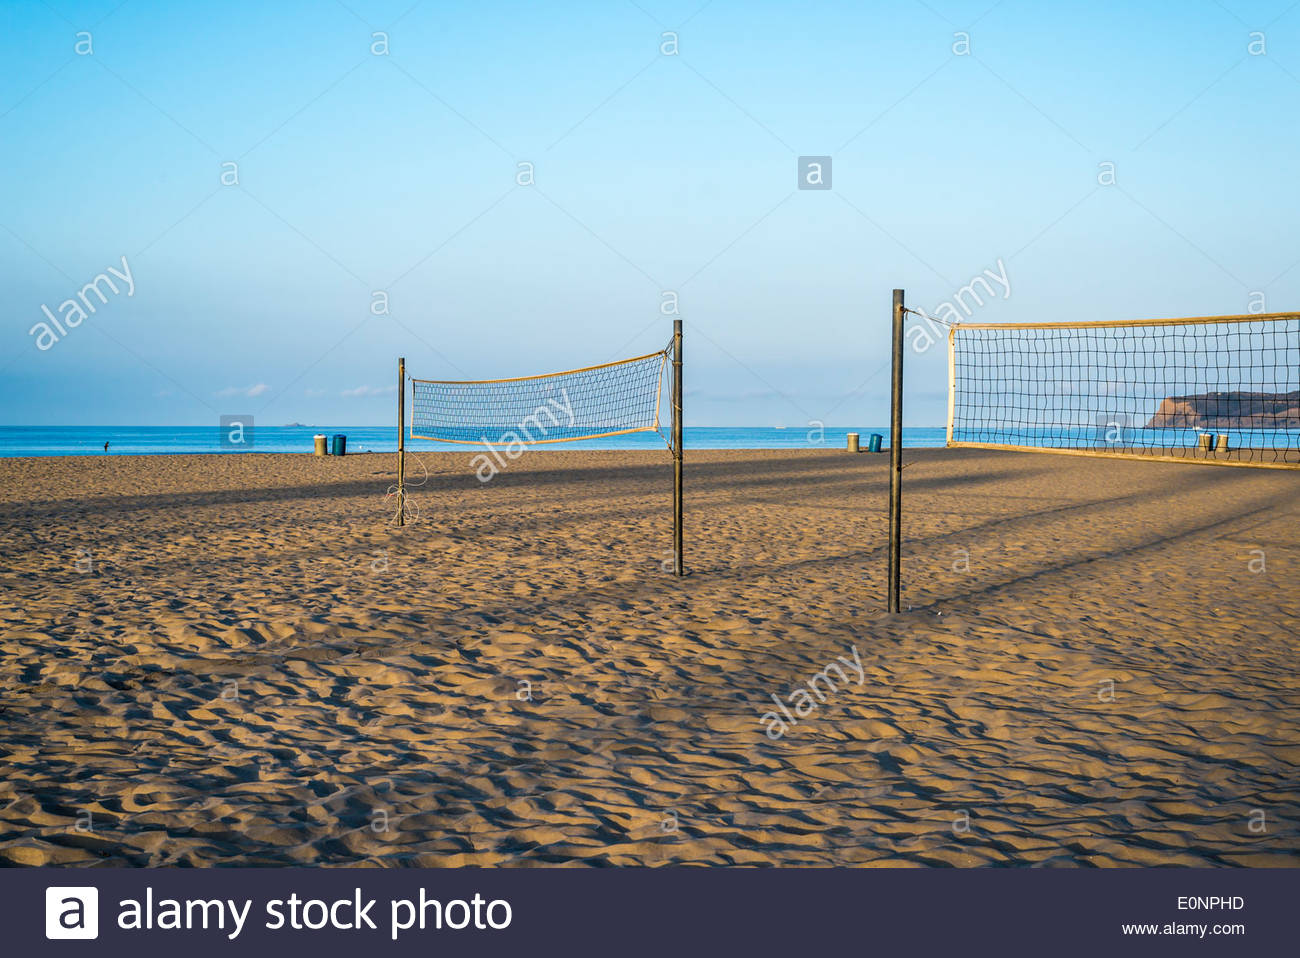 beach volleyball court diagram bobcat 743 parts pictures impremedia